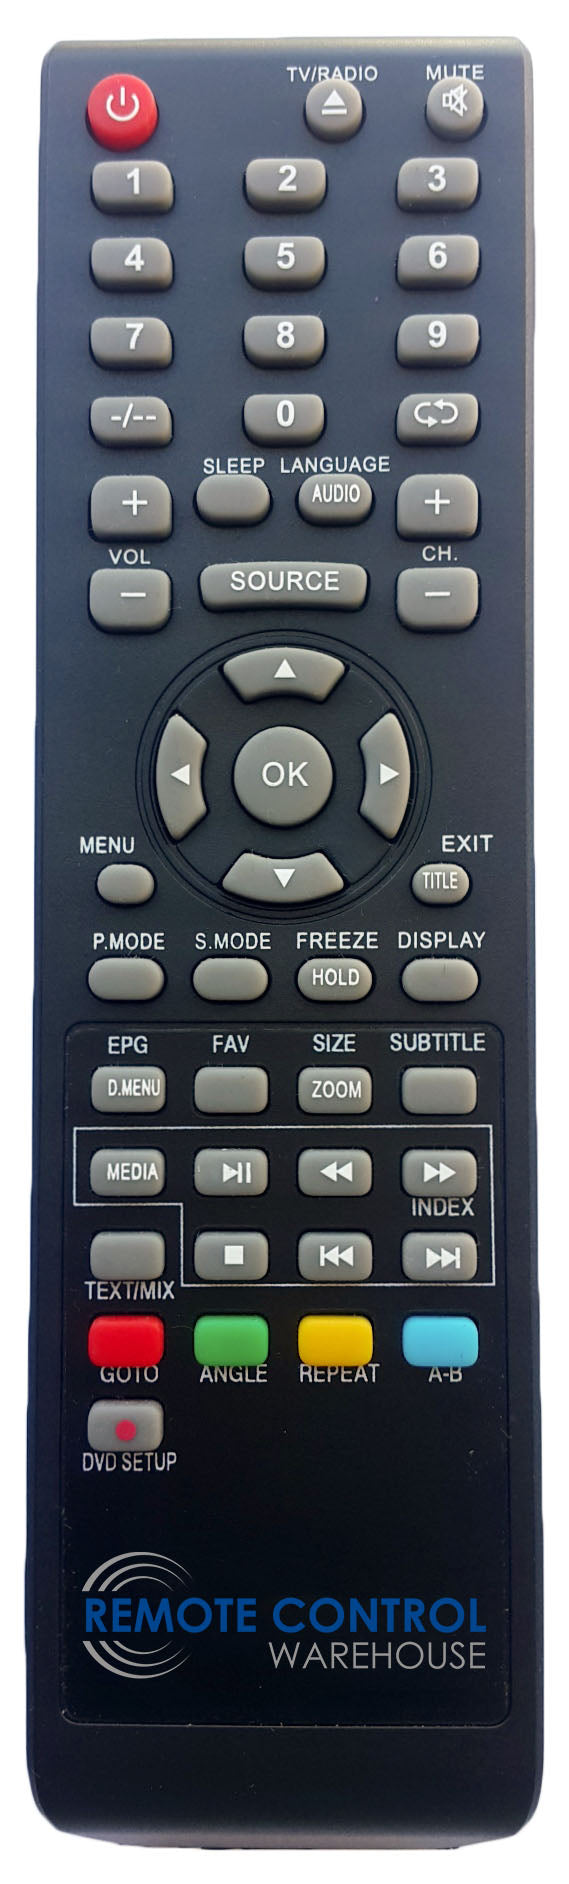 REPLACEMENT BAUHN REMOTE CONTROL SUBSTITUTE  AS-39FHD1  AS39FHD1 LCD TV - Remote Control Warehouse